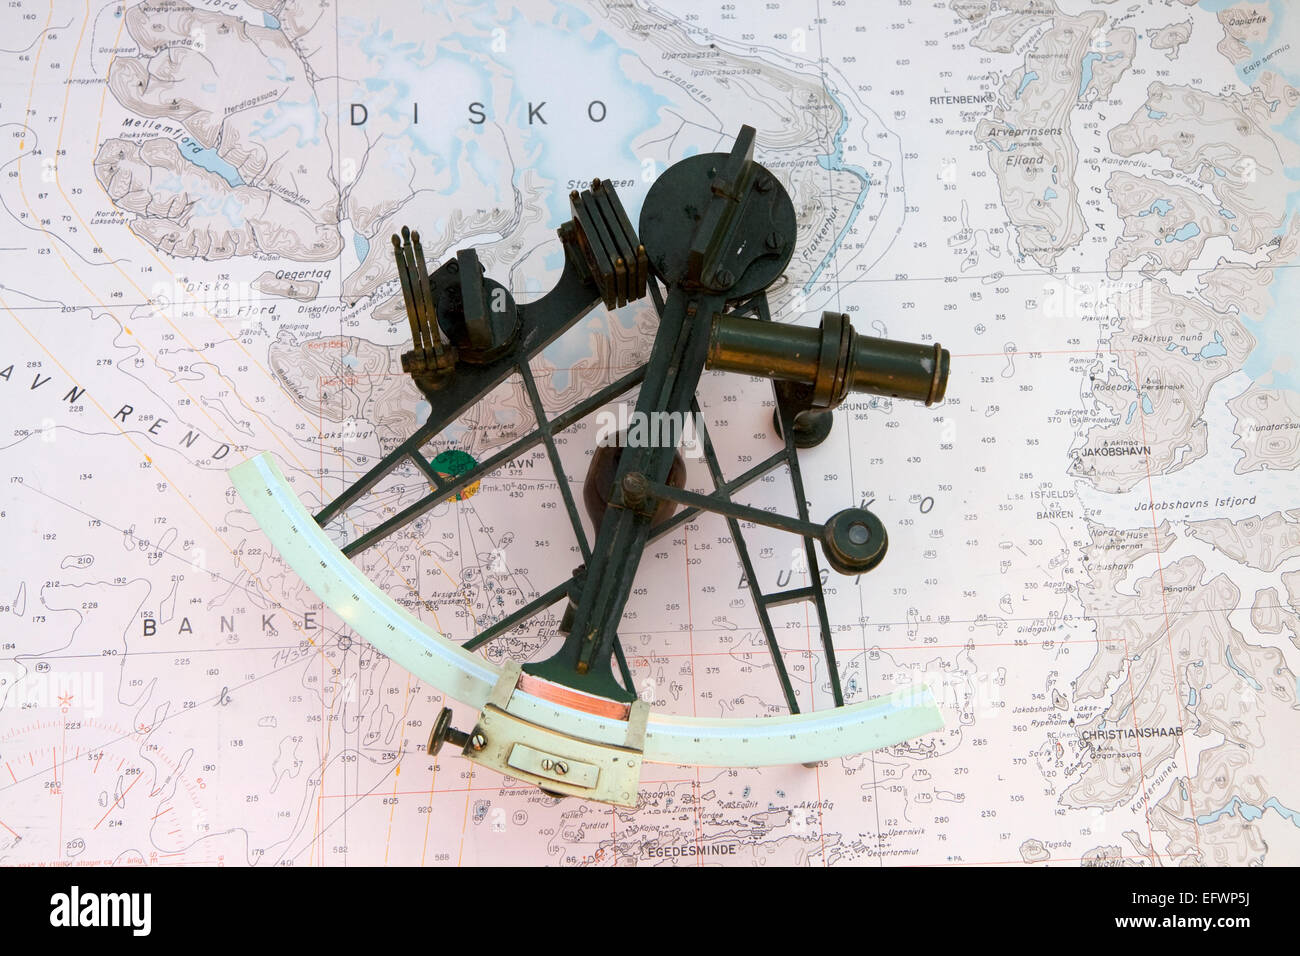 Old Sextant on a chart from the northern part of Greenland - Stock Image